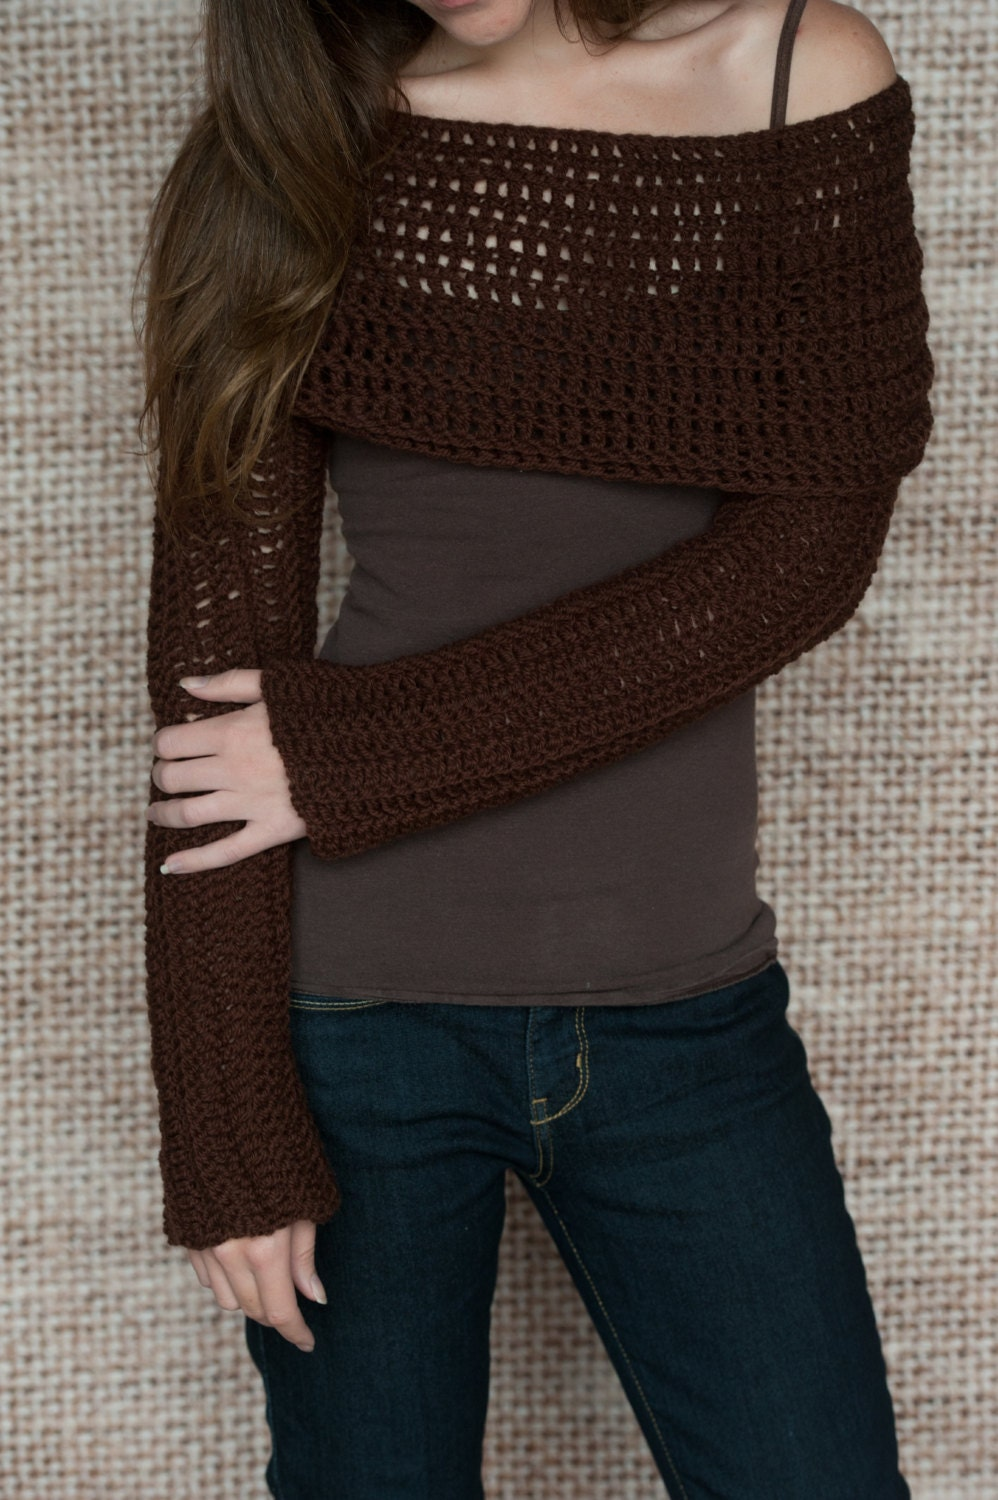 Knitting Pattern For Scarf With Sleeves : Crochet Pattern Sleeve Wrap Scarf Instand Download PDF